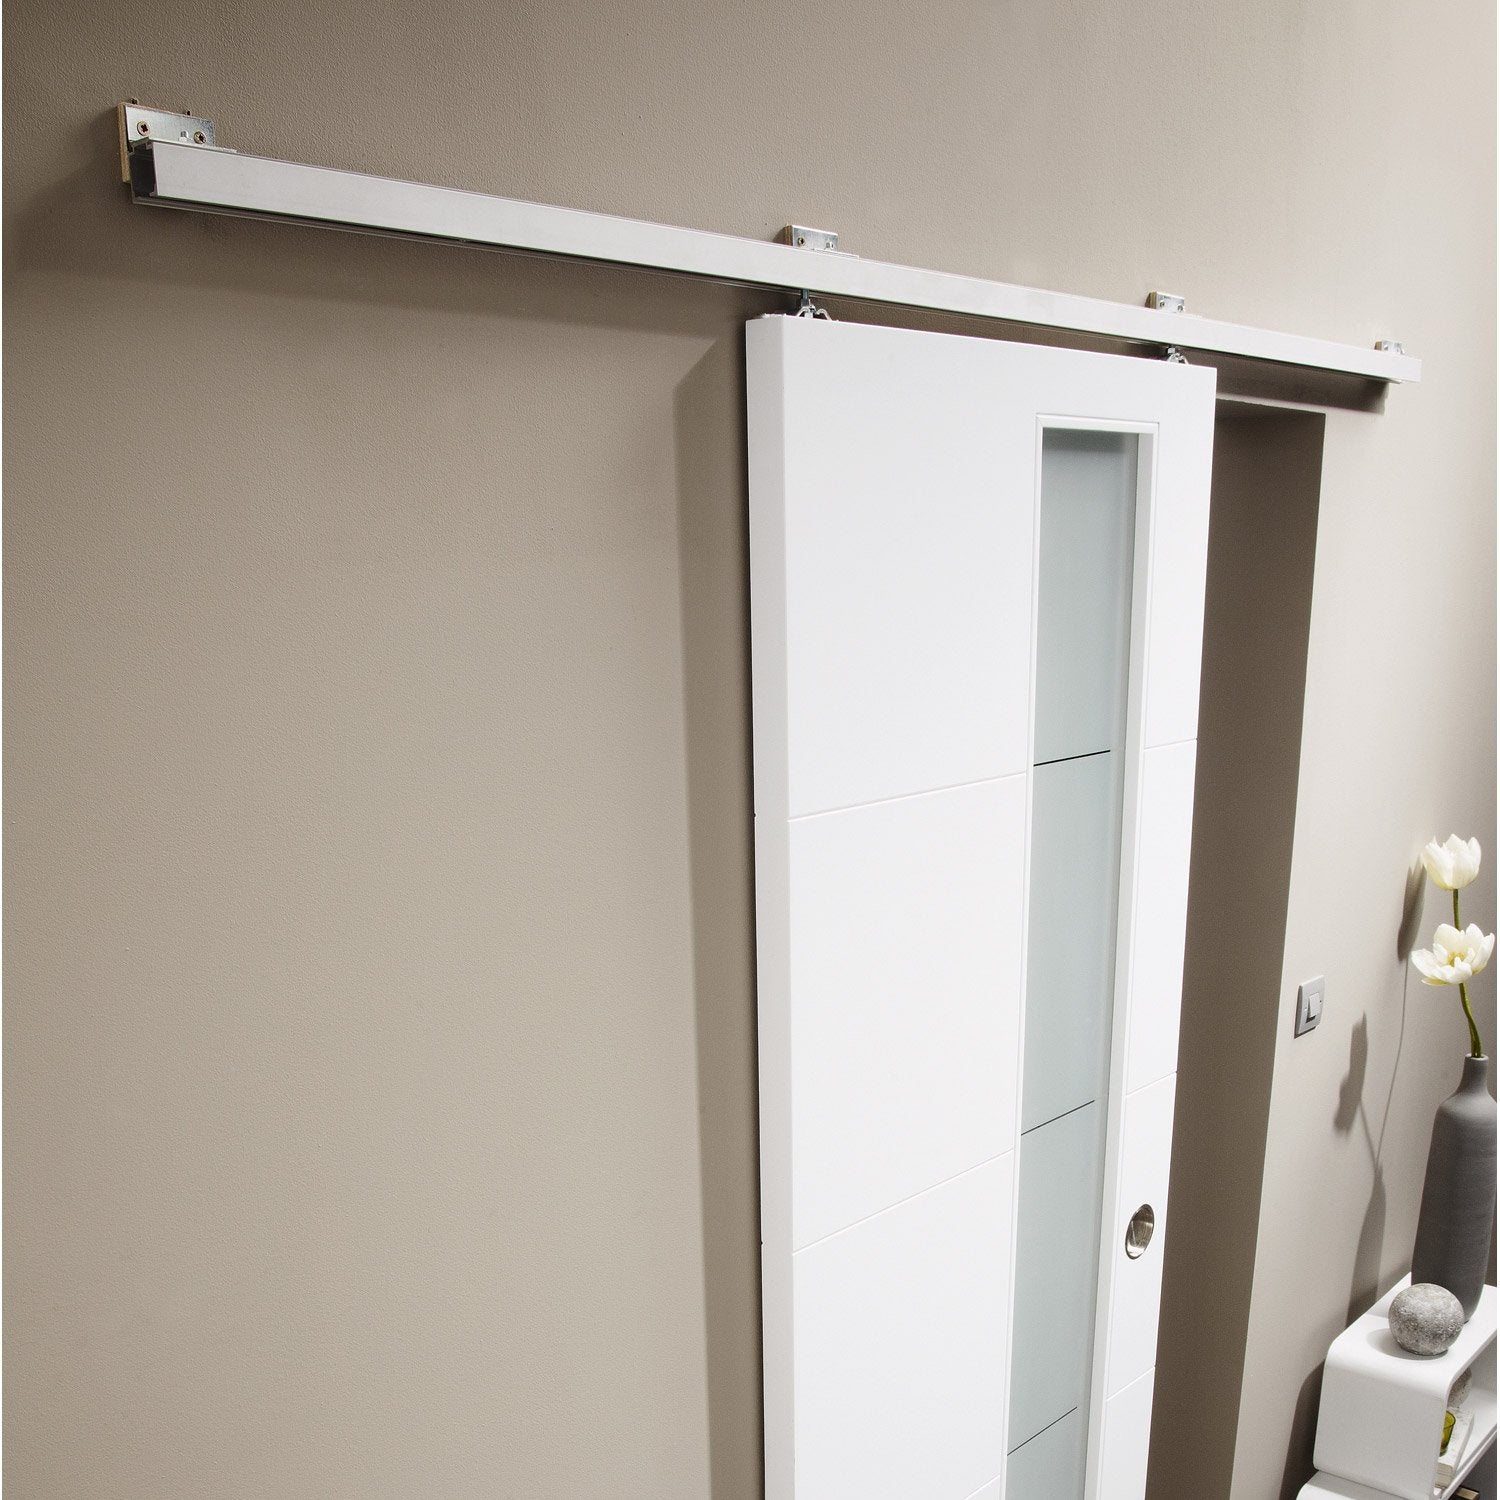 Rail coulissant turbo 2 pour porte de largeur 93 cm - Porte da interno leroy merlin ...